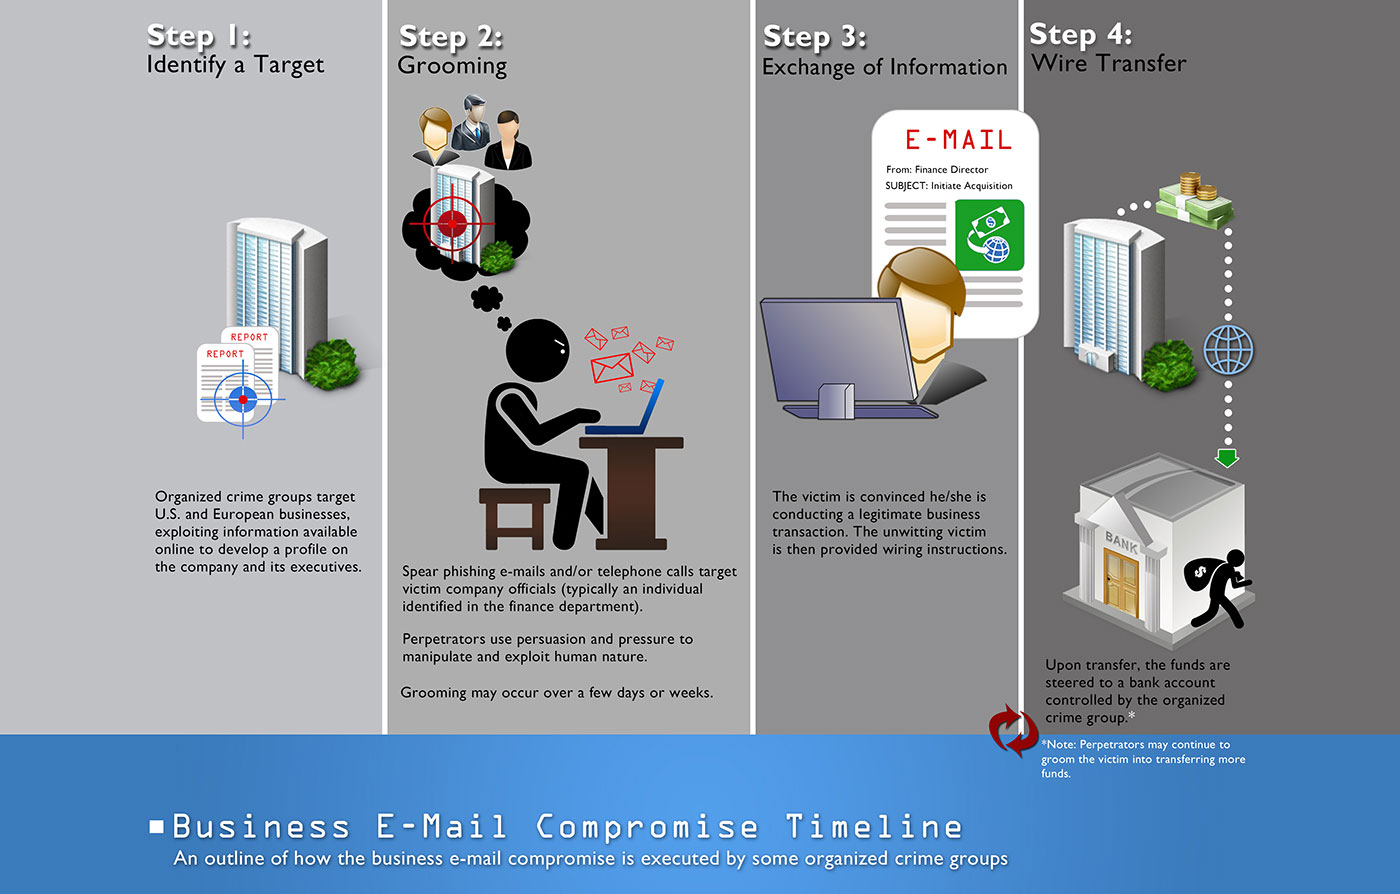 business-email-compromise-timeline-022717[1]